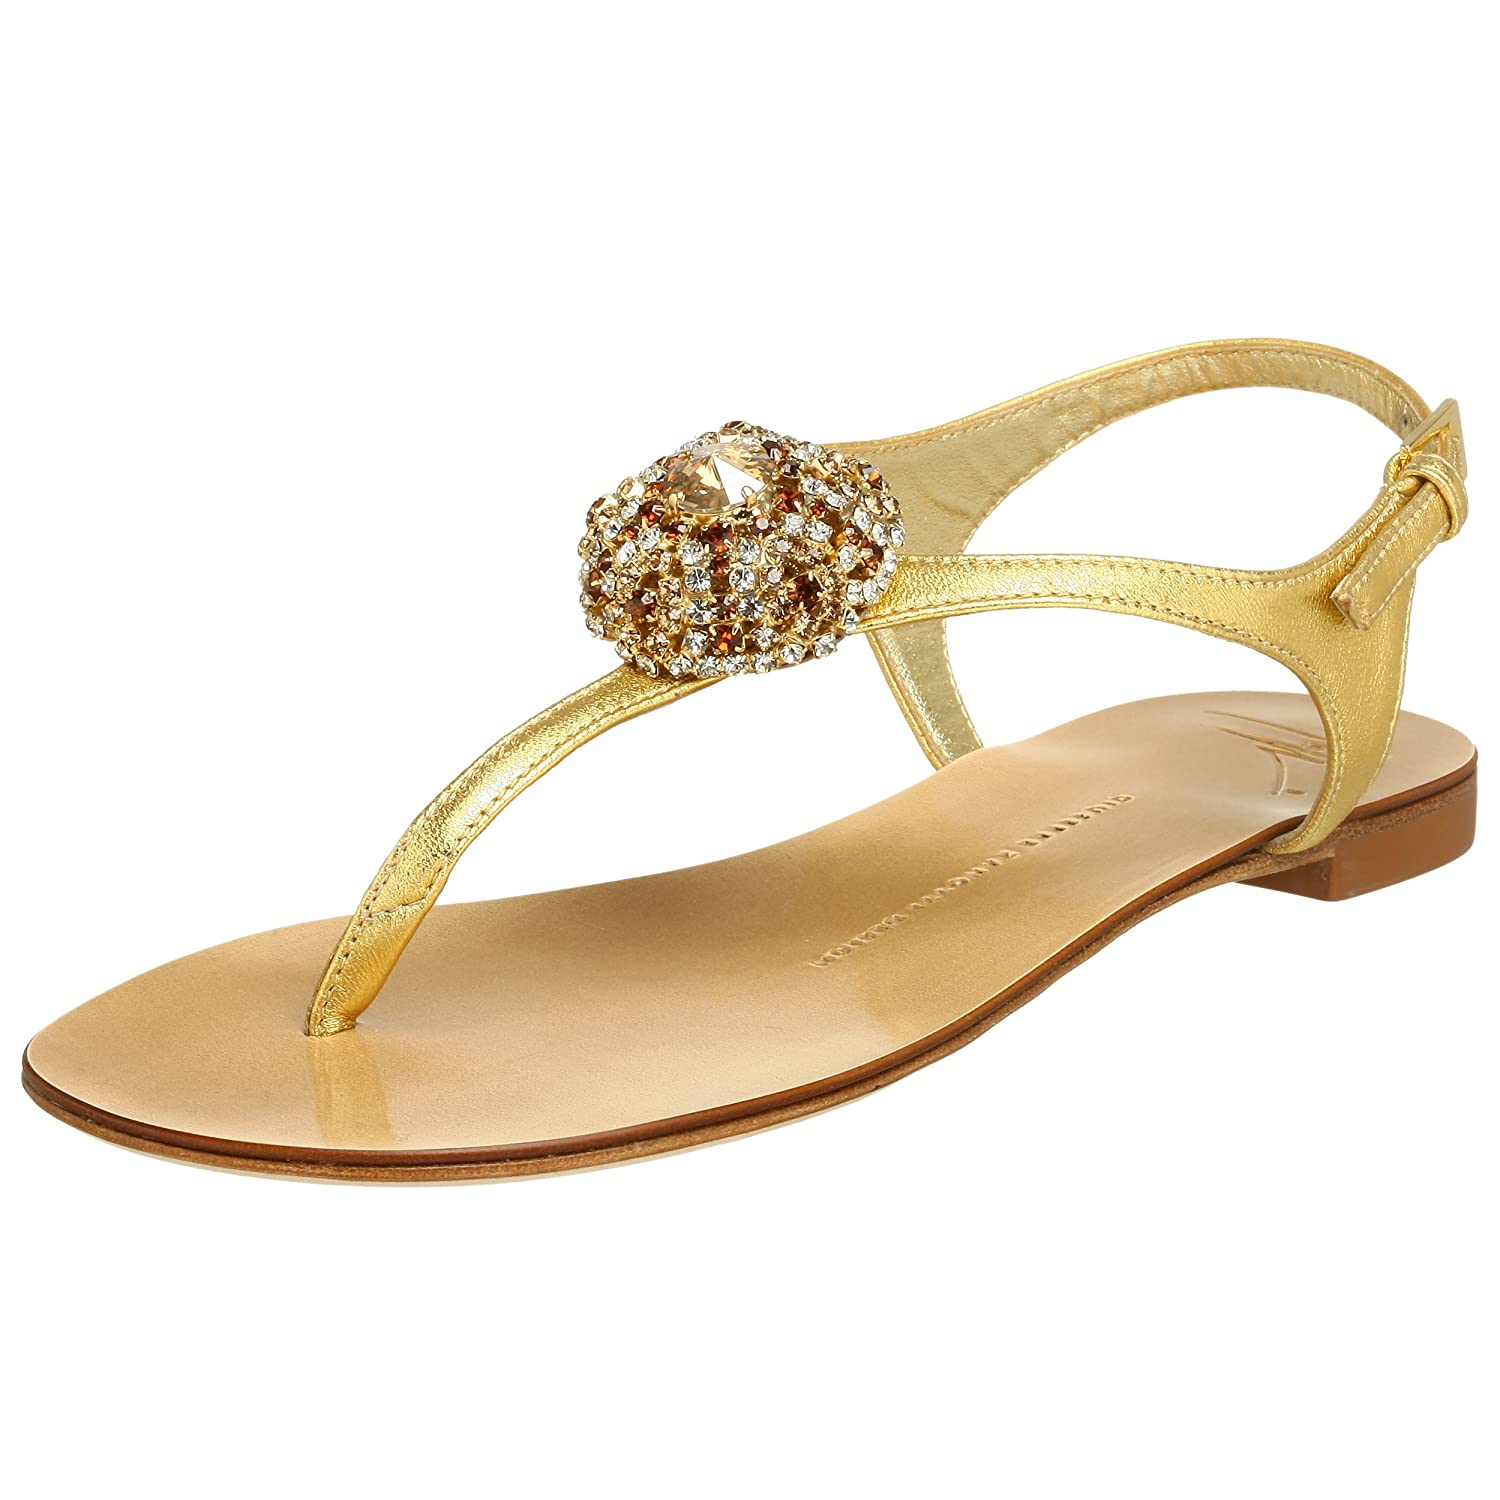 Giuseppe Zanotti Women's E90051 Sandal - Free Overnight Shipping & Return Shipping: Endless.com from endless.com